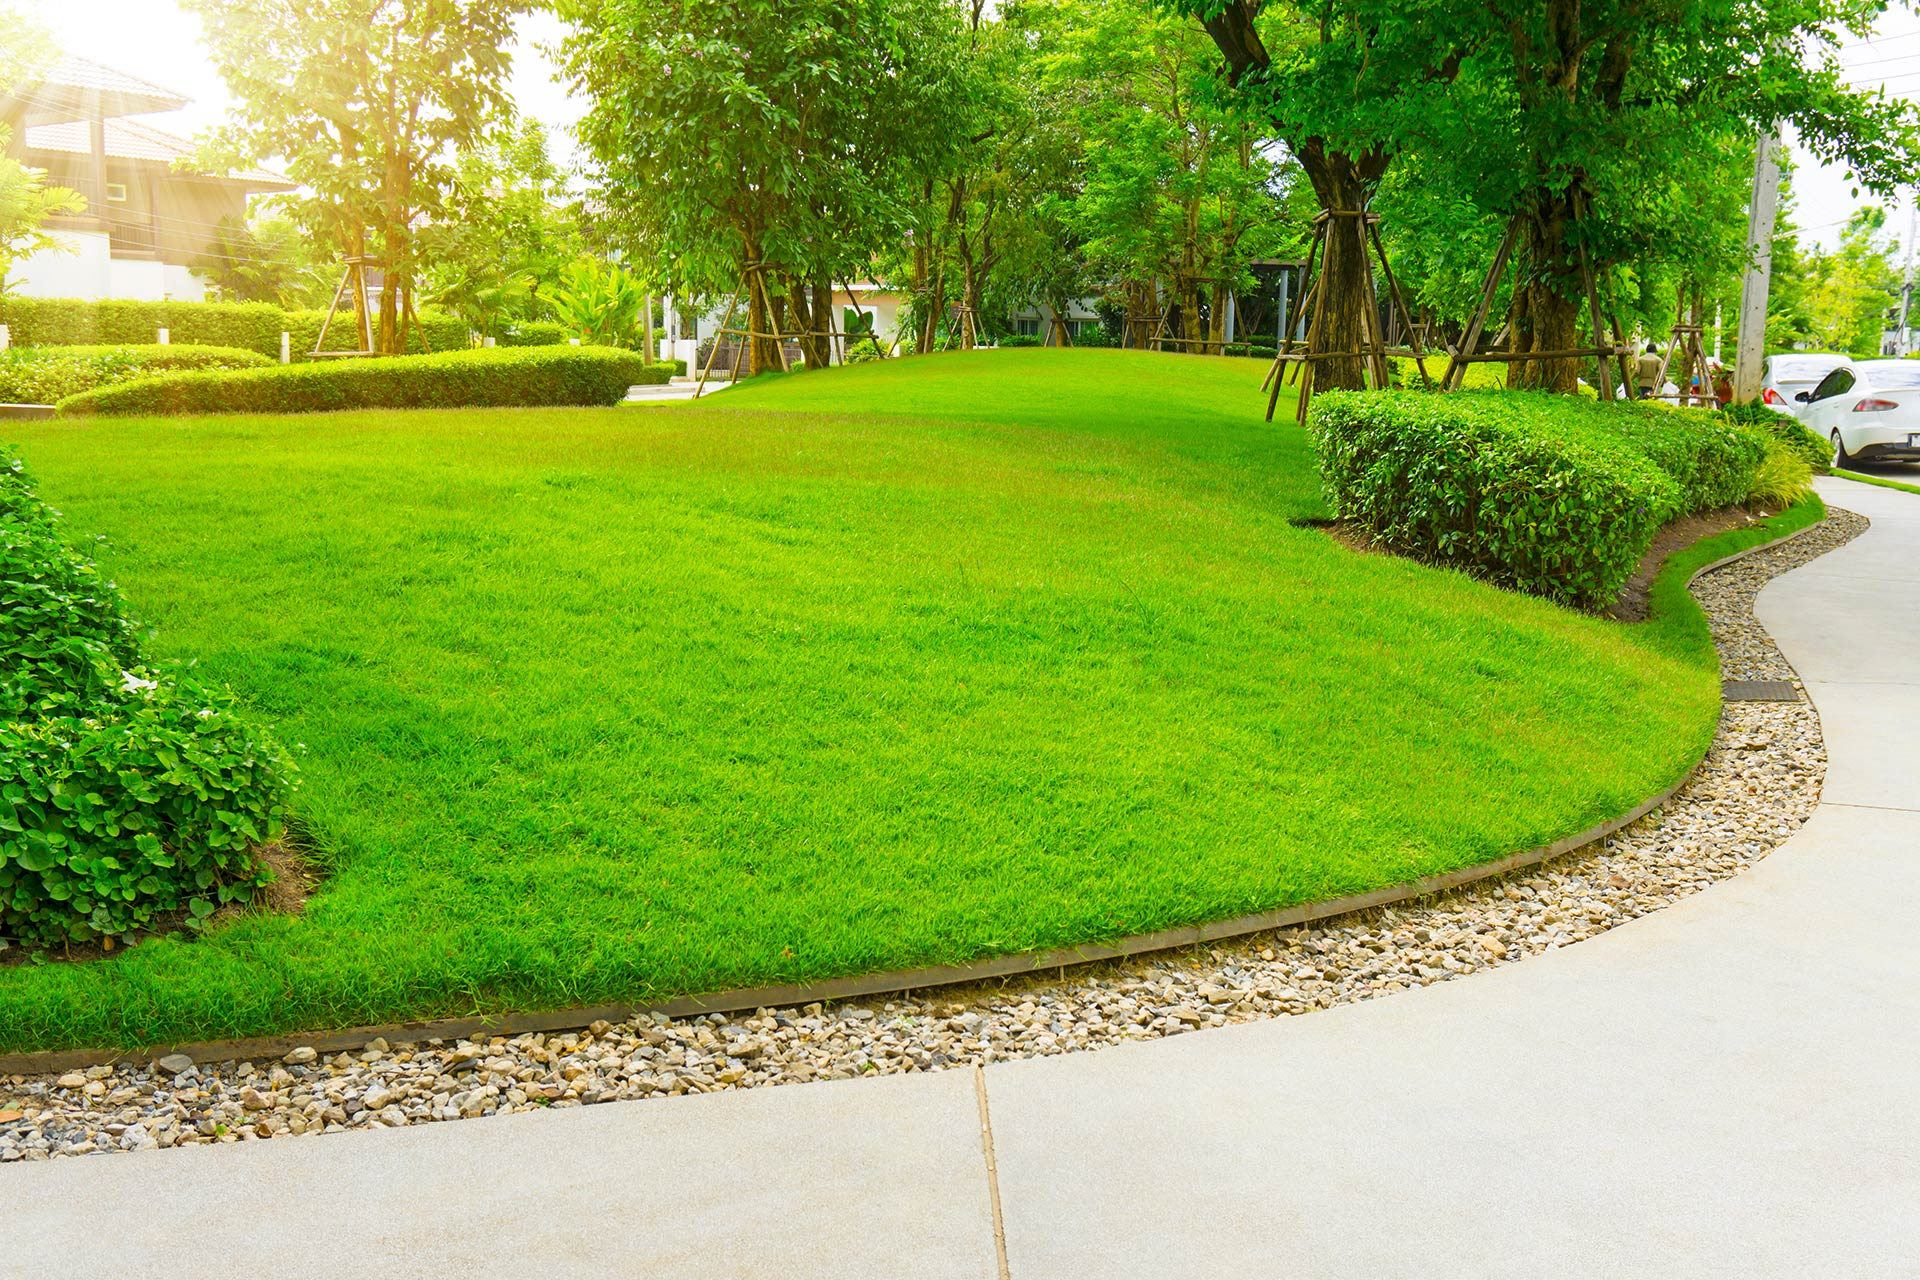 a well maintained lawn